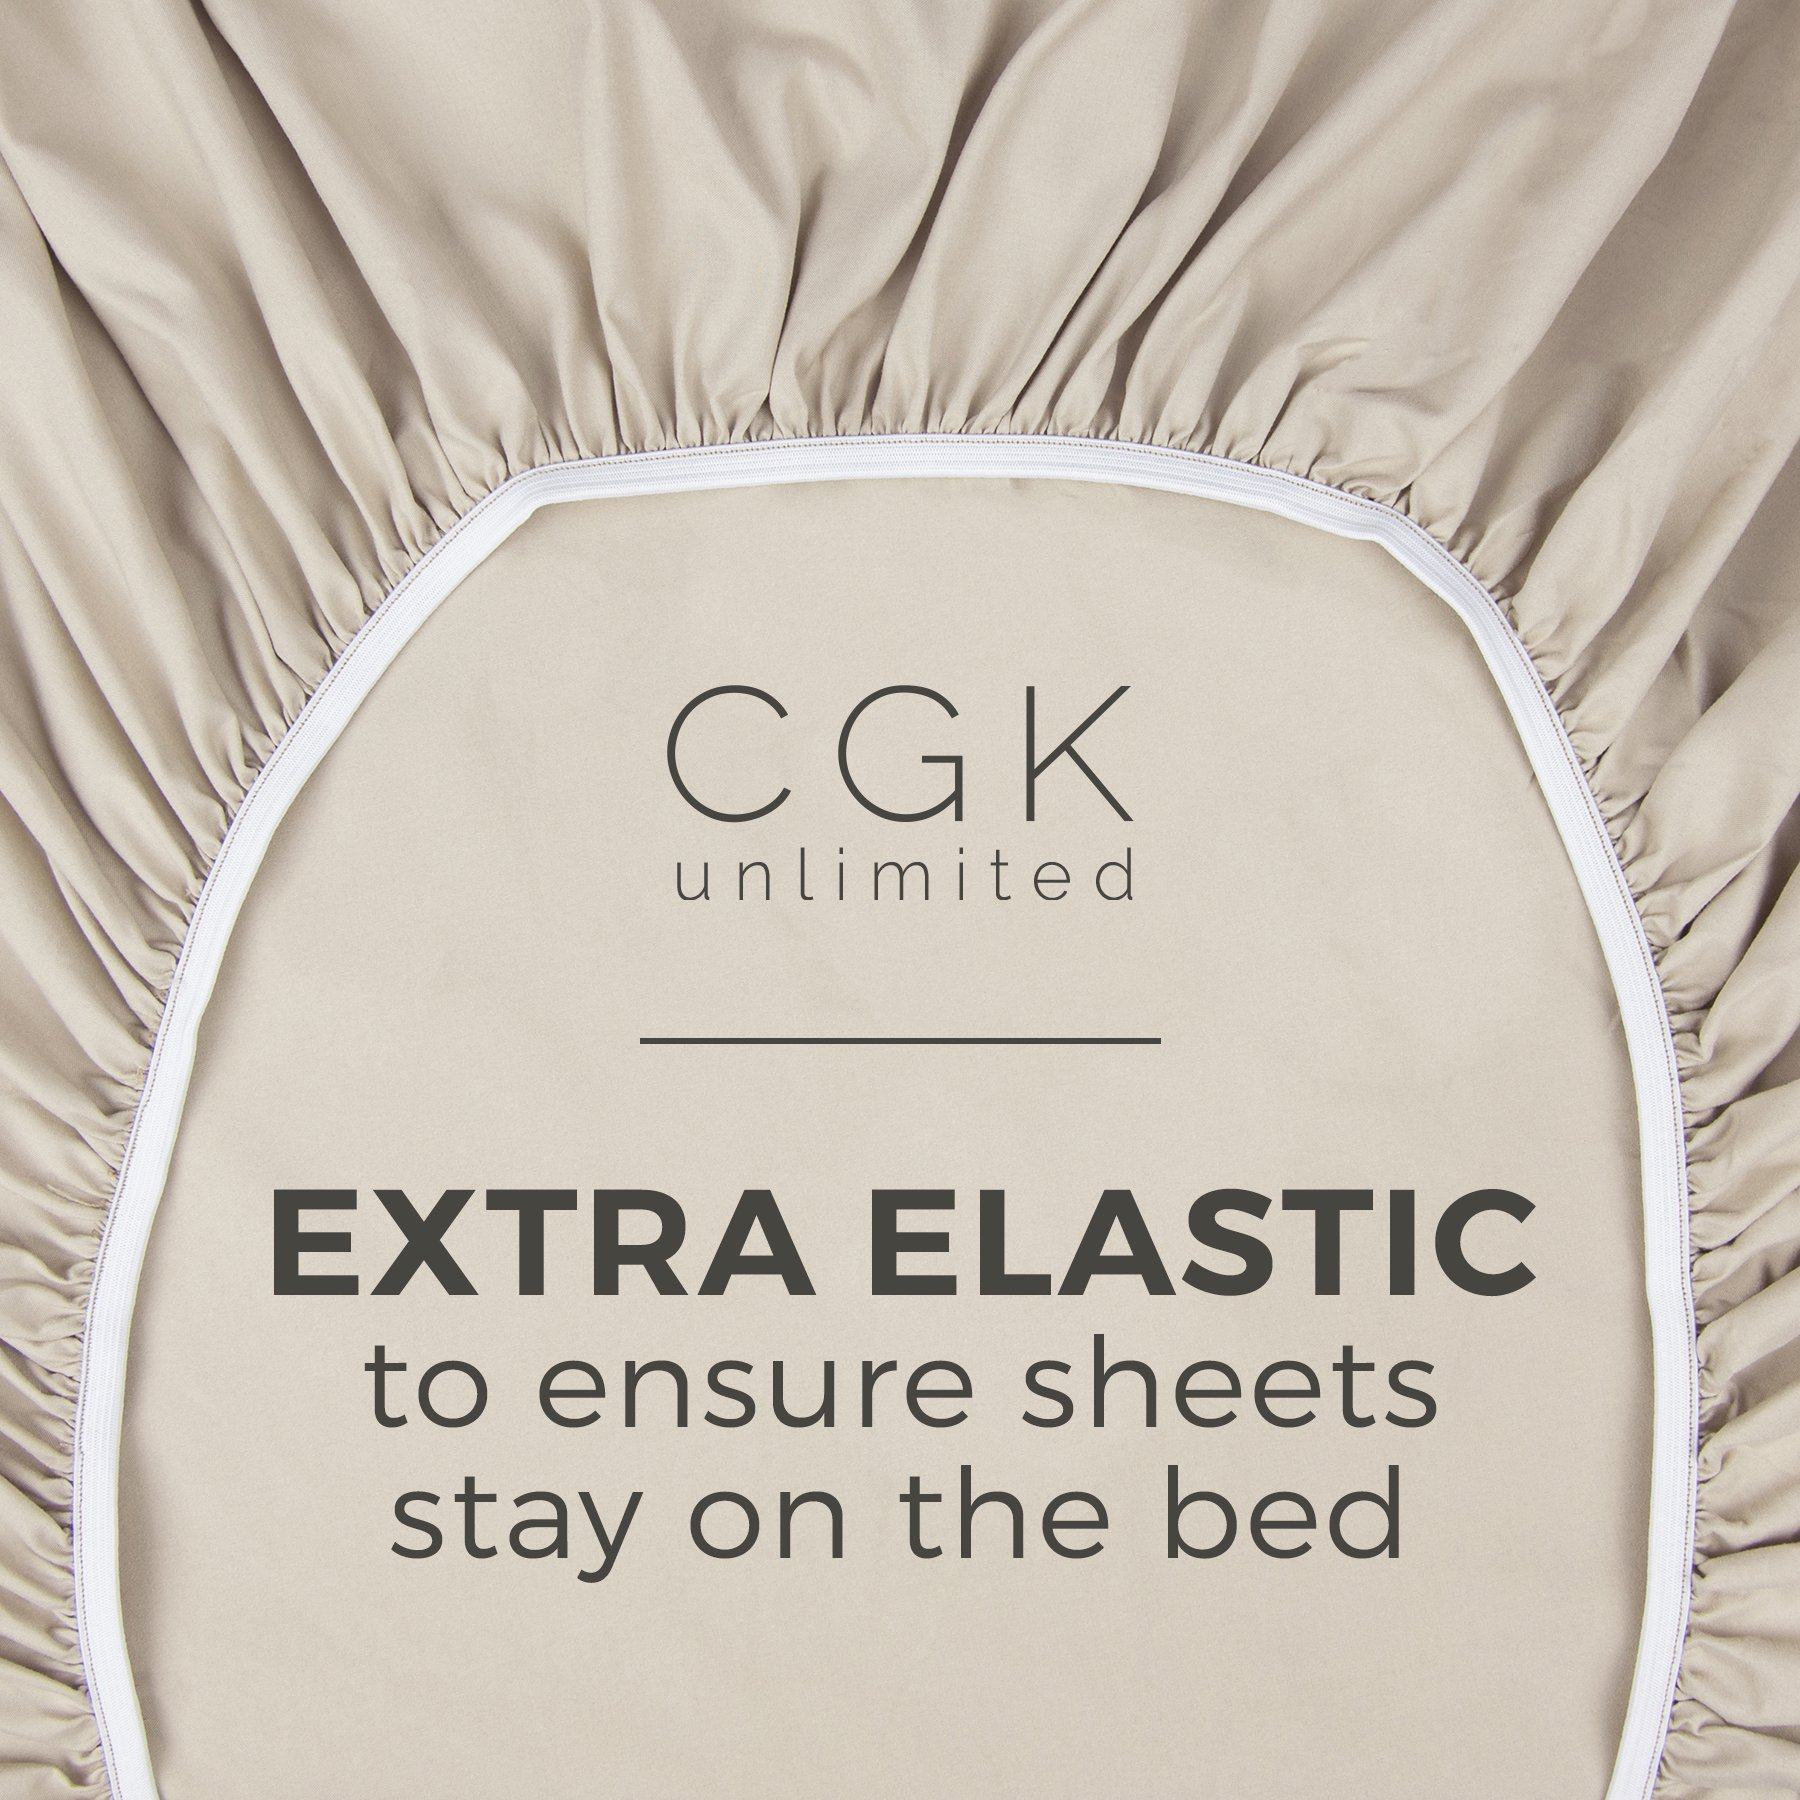 Queen Size Sheet Set - 4 Piece Set - Hotel Luxury Bed Sheets - Extra Soft - Deep Pockets - Easy Fit - Breathable & Cooling - Wrinkle Free - Comfy – Beige Tan Bed Sheets - Queens Sheets – 4 PC by CGK Unlimited (Image #3)